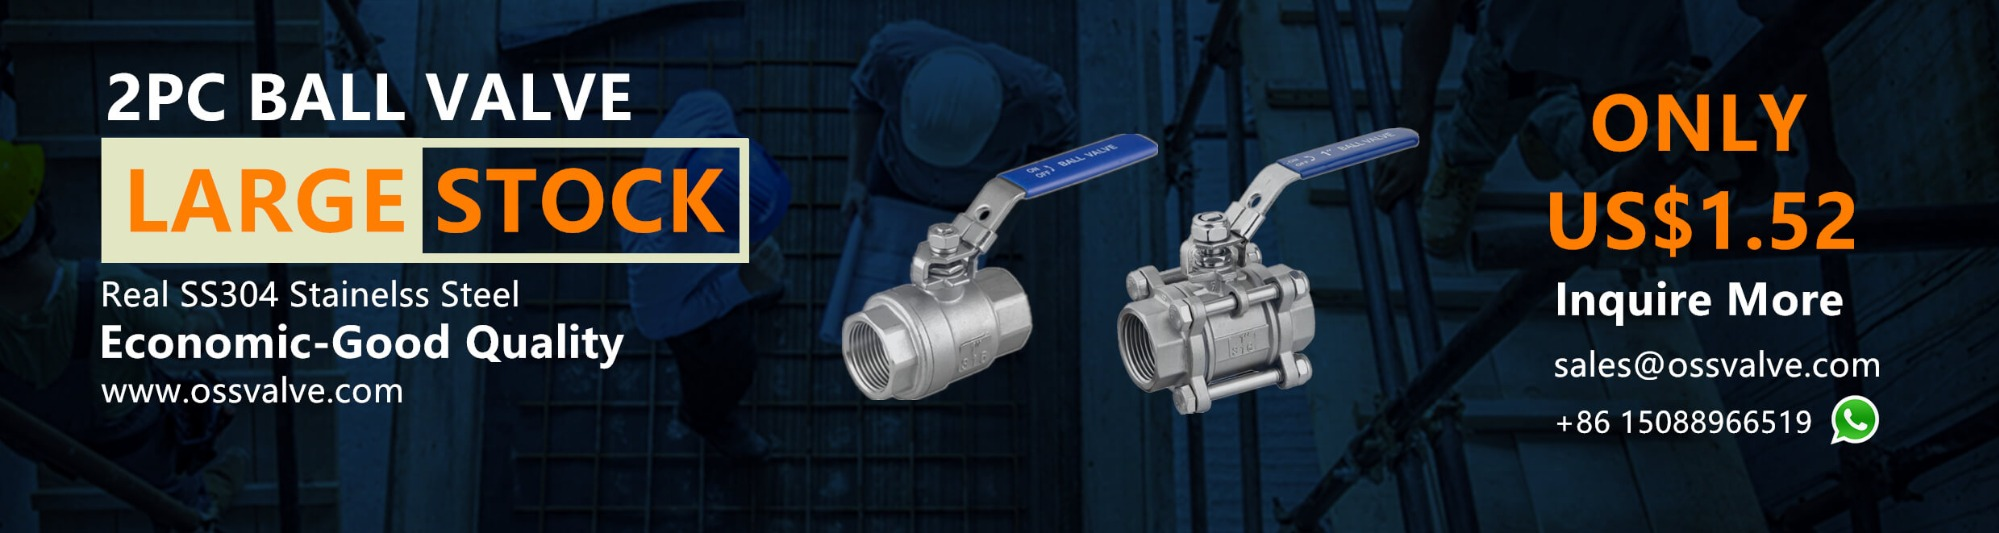 Zhejiang Oss Valve Co Ltd